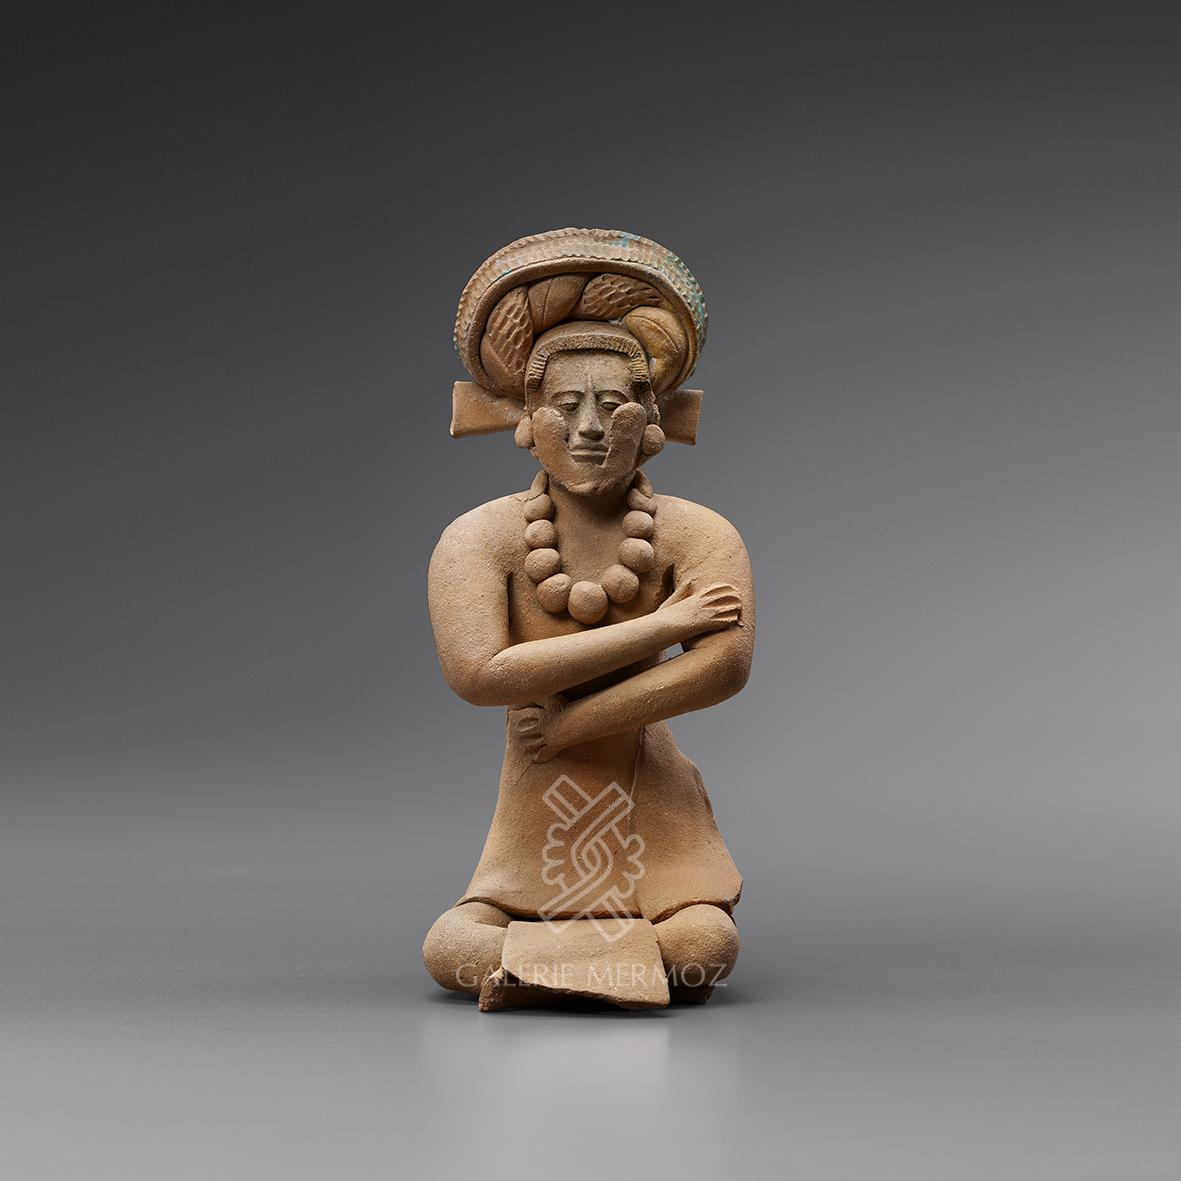 Fascinating Pre-Columbian Art at PAD 2019 Galerie Mermoz - Seated Dignitary pad geneve Fascinating Pre-Columbian Art at PAD Geneve 2019: Galerie Mermoz Fascinating Pre Columbian Art at PAD 2019 Galerie Mermoz Seated Dignitary